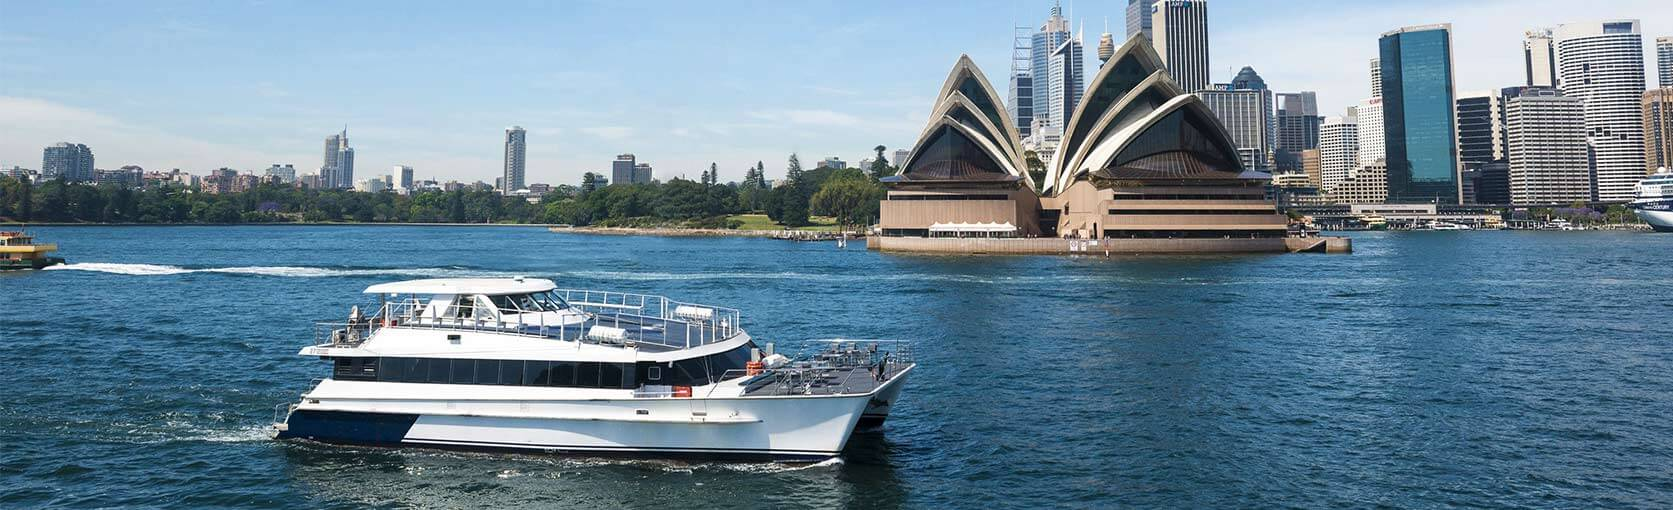 BUFFET LUNCH CRUISE ON SYDNEY HARBOUR